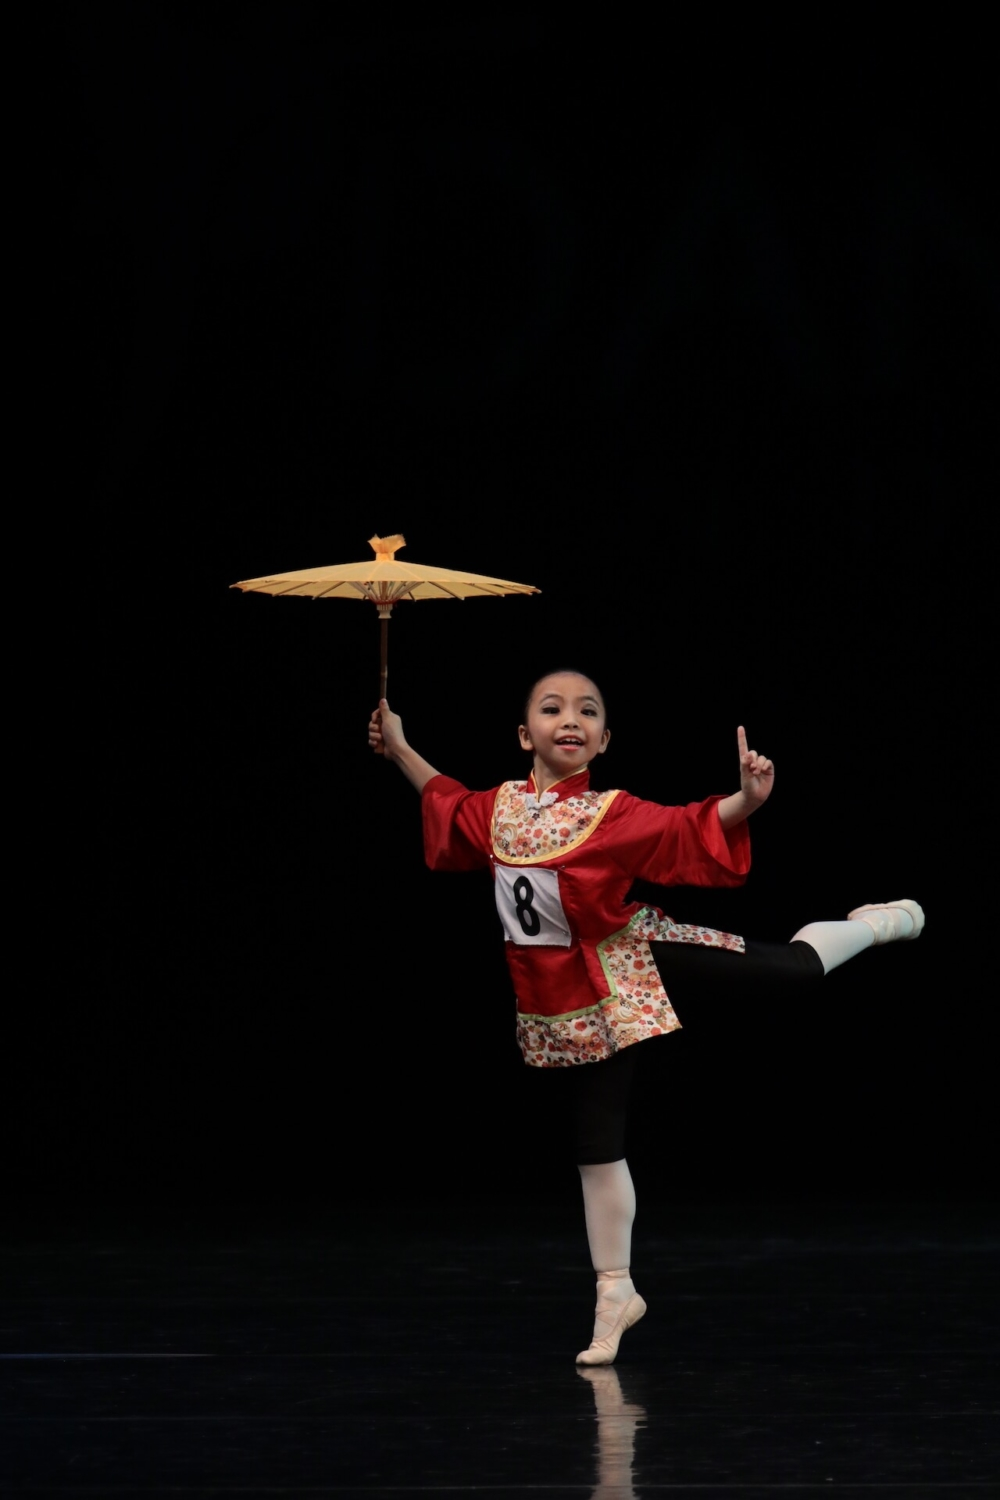 Dance Prix Indonesia 2019 – Ballet Junior A 3rd Place, Alicia Lee Shi Ying (Aurora Dance & Performing Arts Centre)